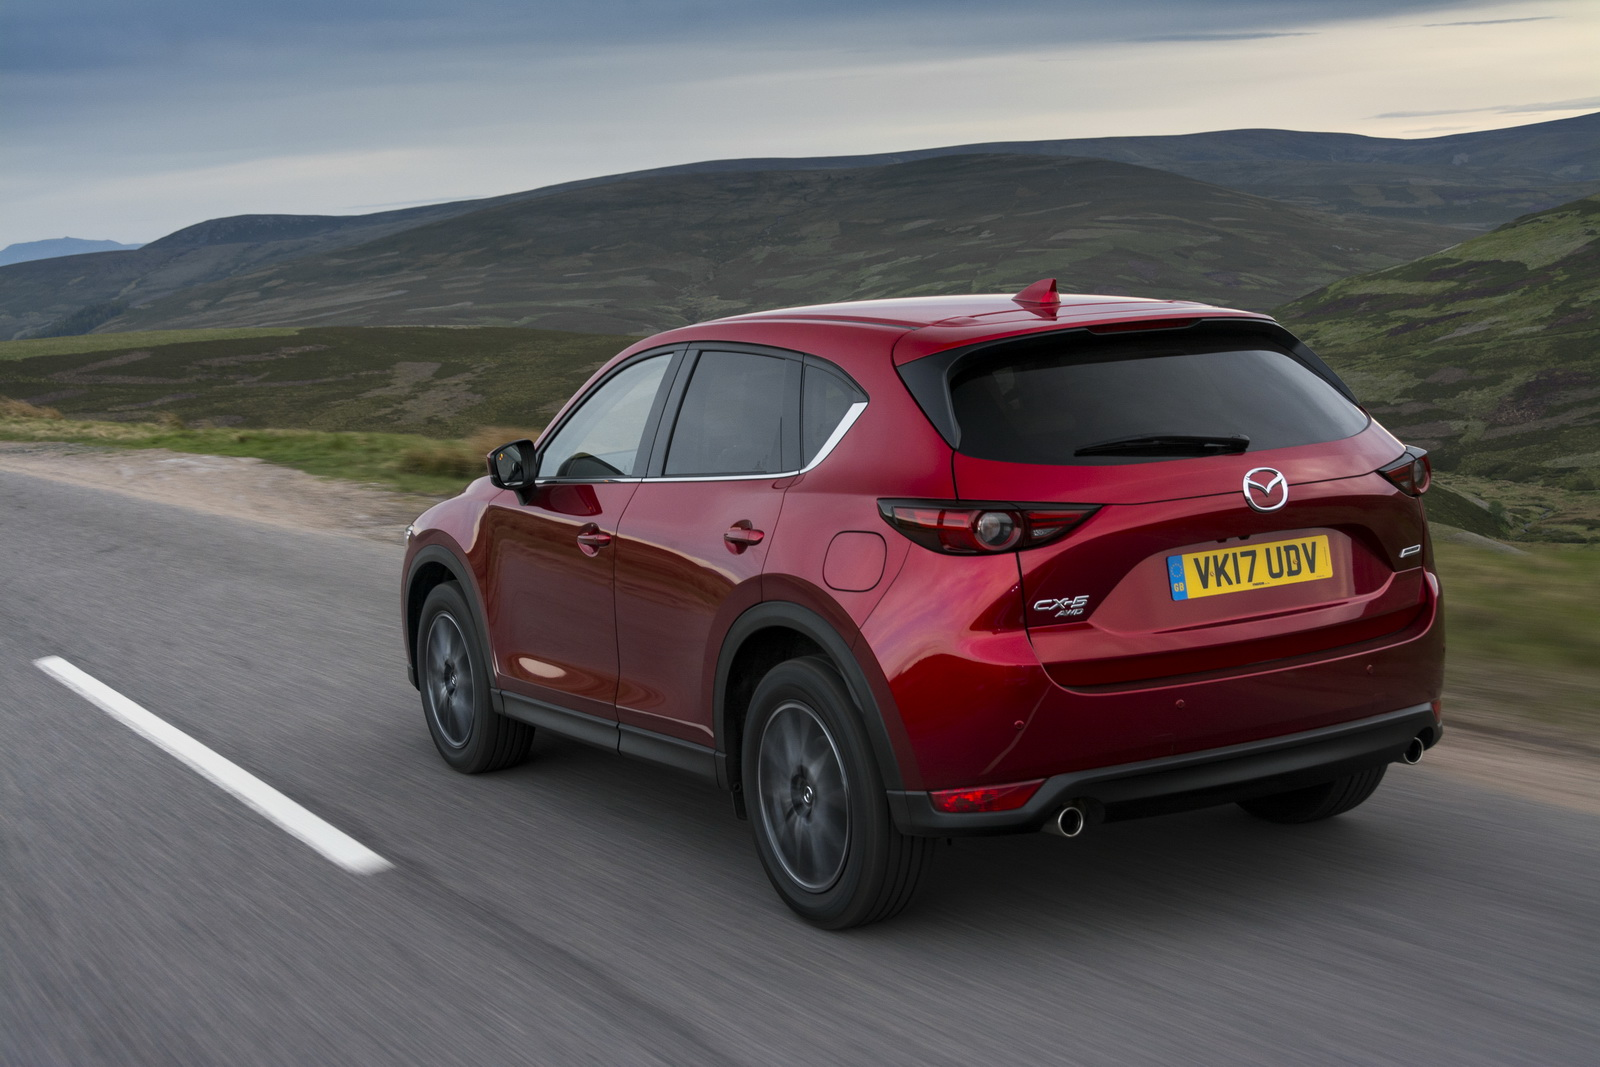 mazda working on squeaky clean skyactiv x supercharged petrol engines. Black Bedroom Furniture Sets. Home Design Ideas